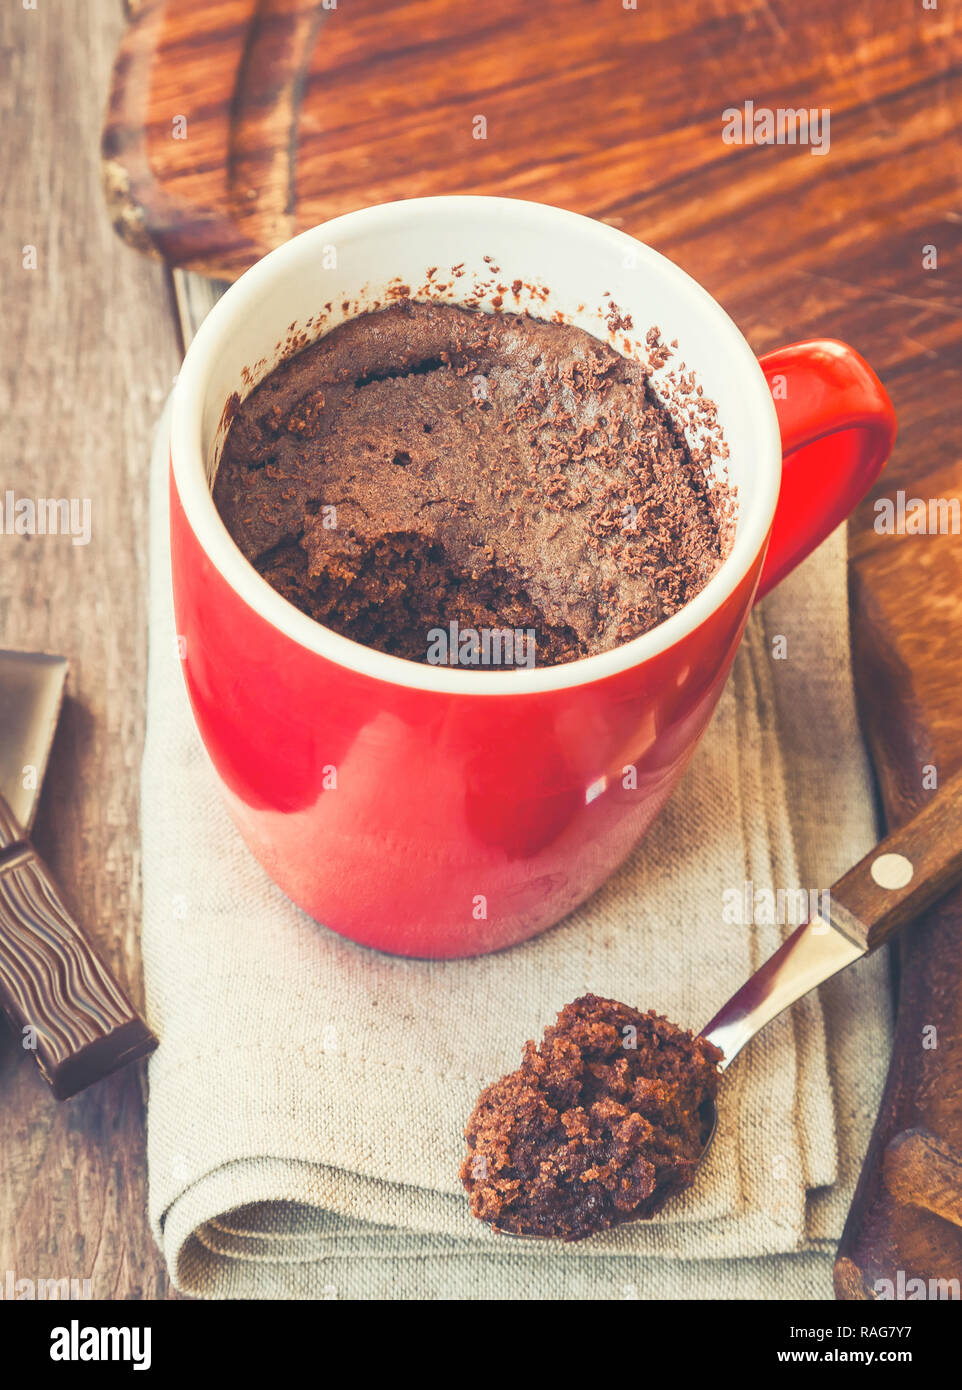 Chocolate cake in a mug. Vintage toned picture. - Stock Image